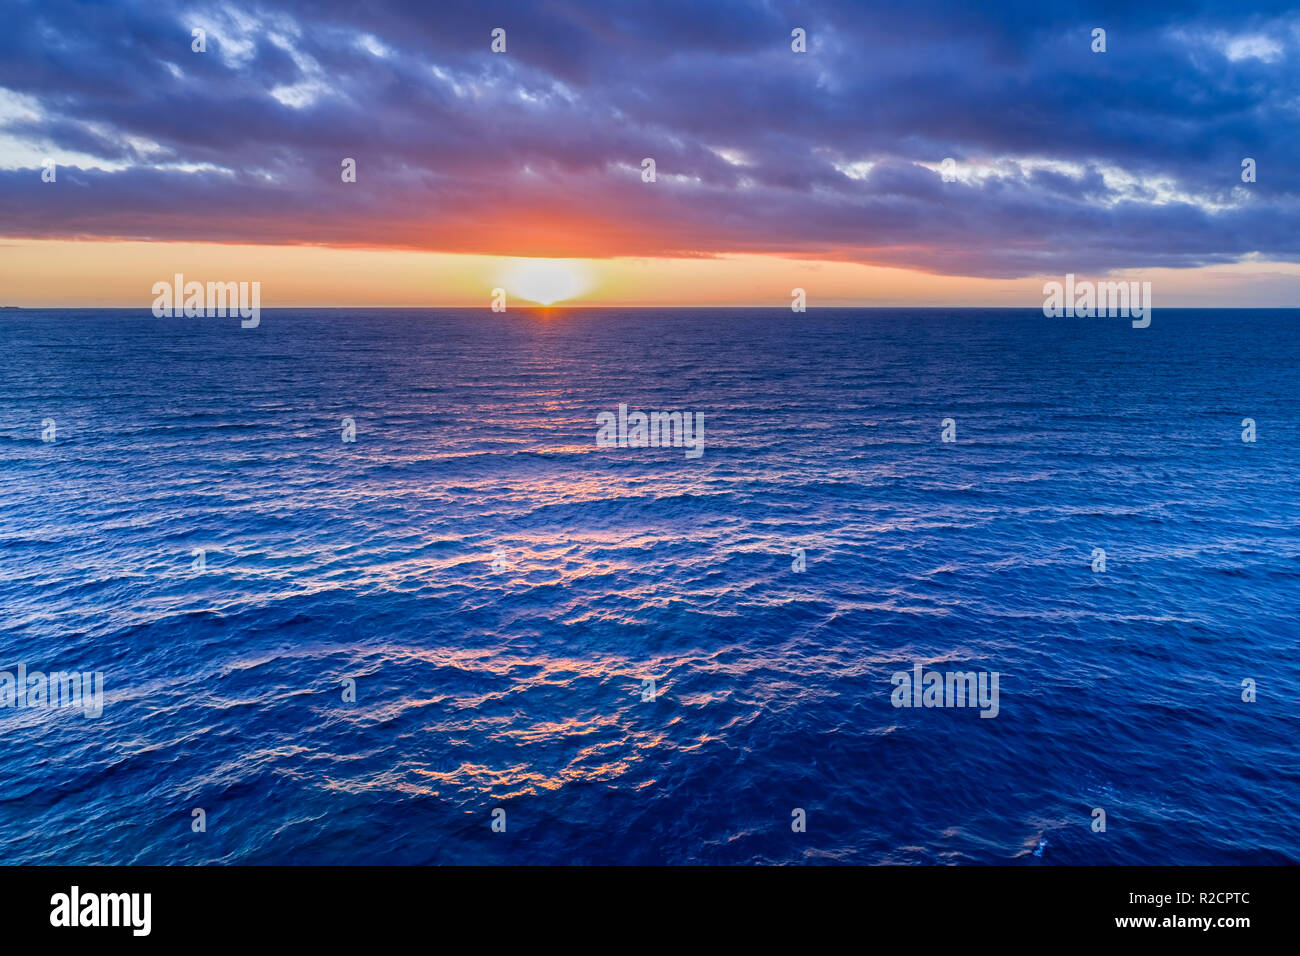 Nothing but sunset over water - aerial view - Stock Image